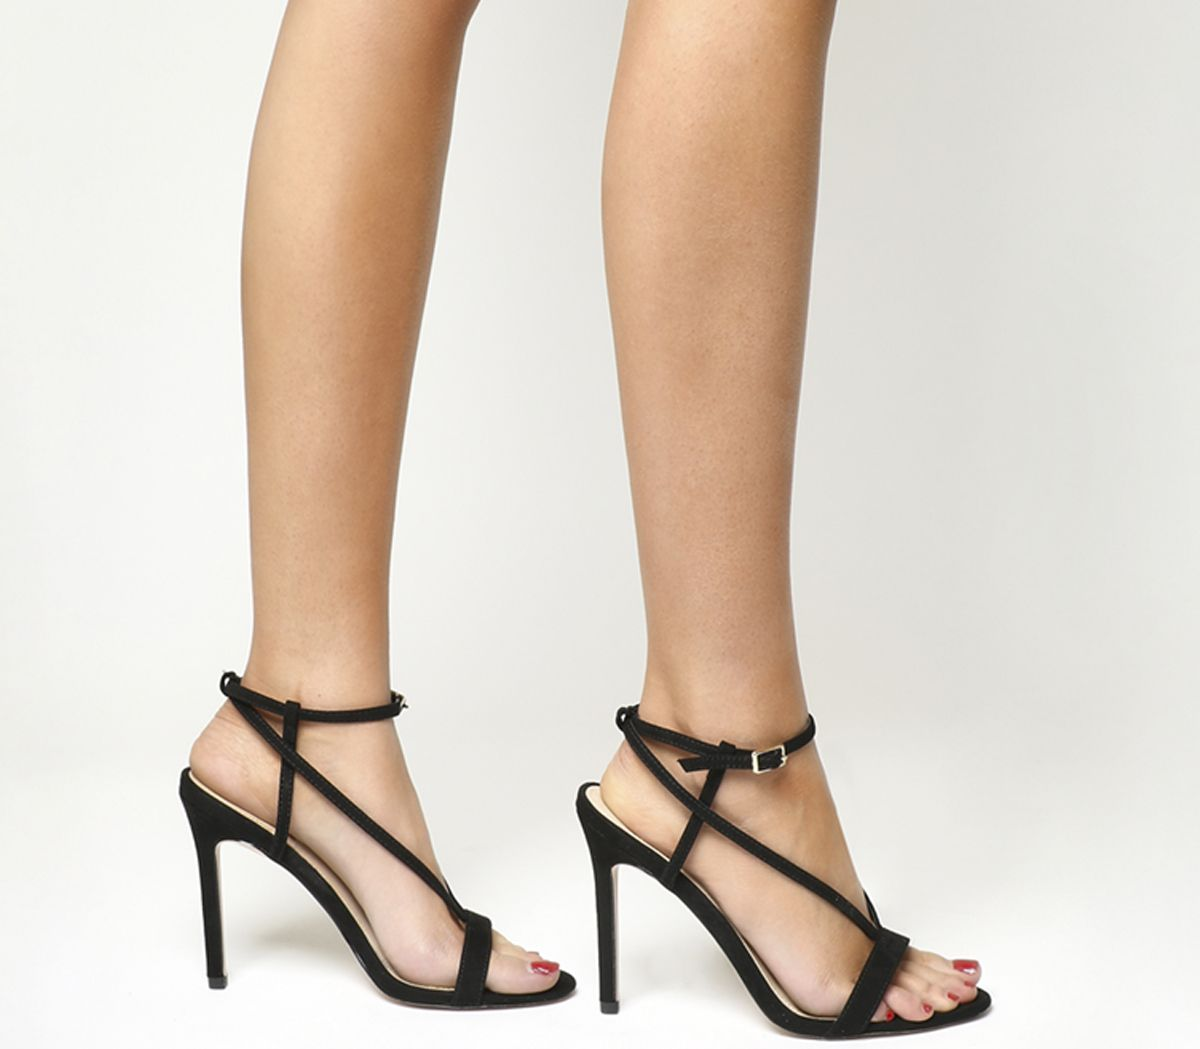 efa7f288f50 Office Heartless Strappy Sandals Black - High Heels